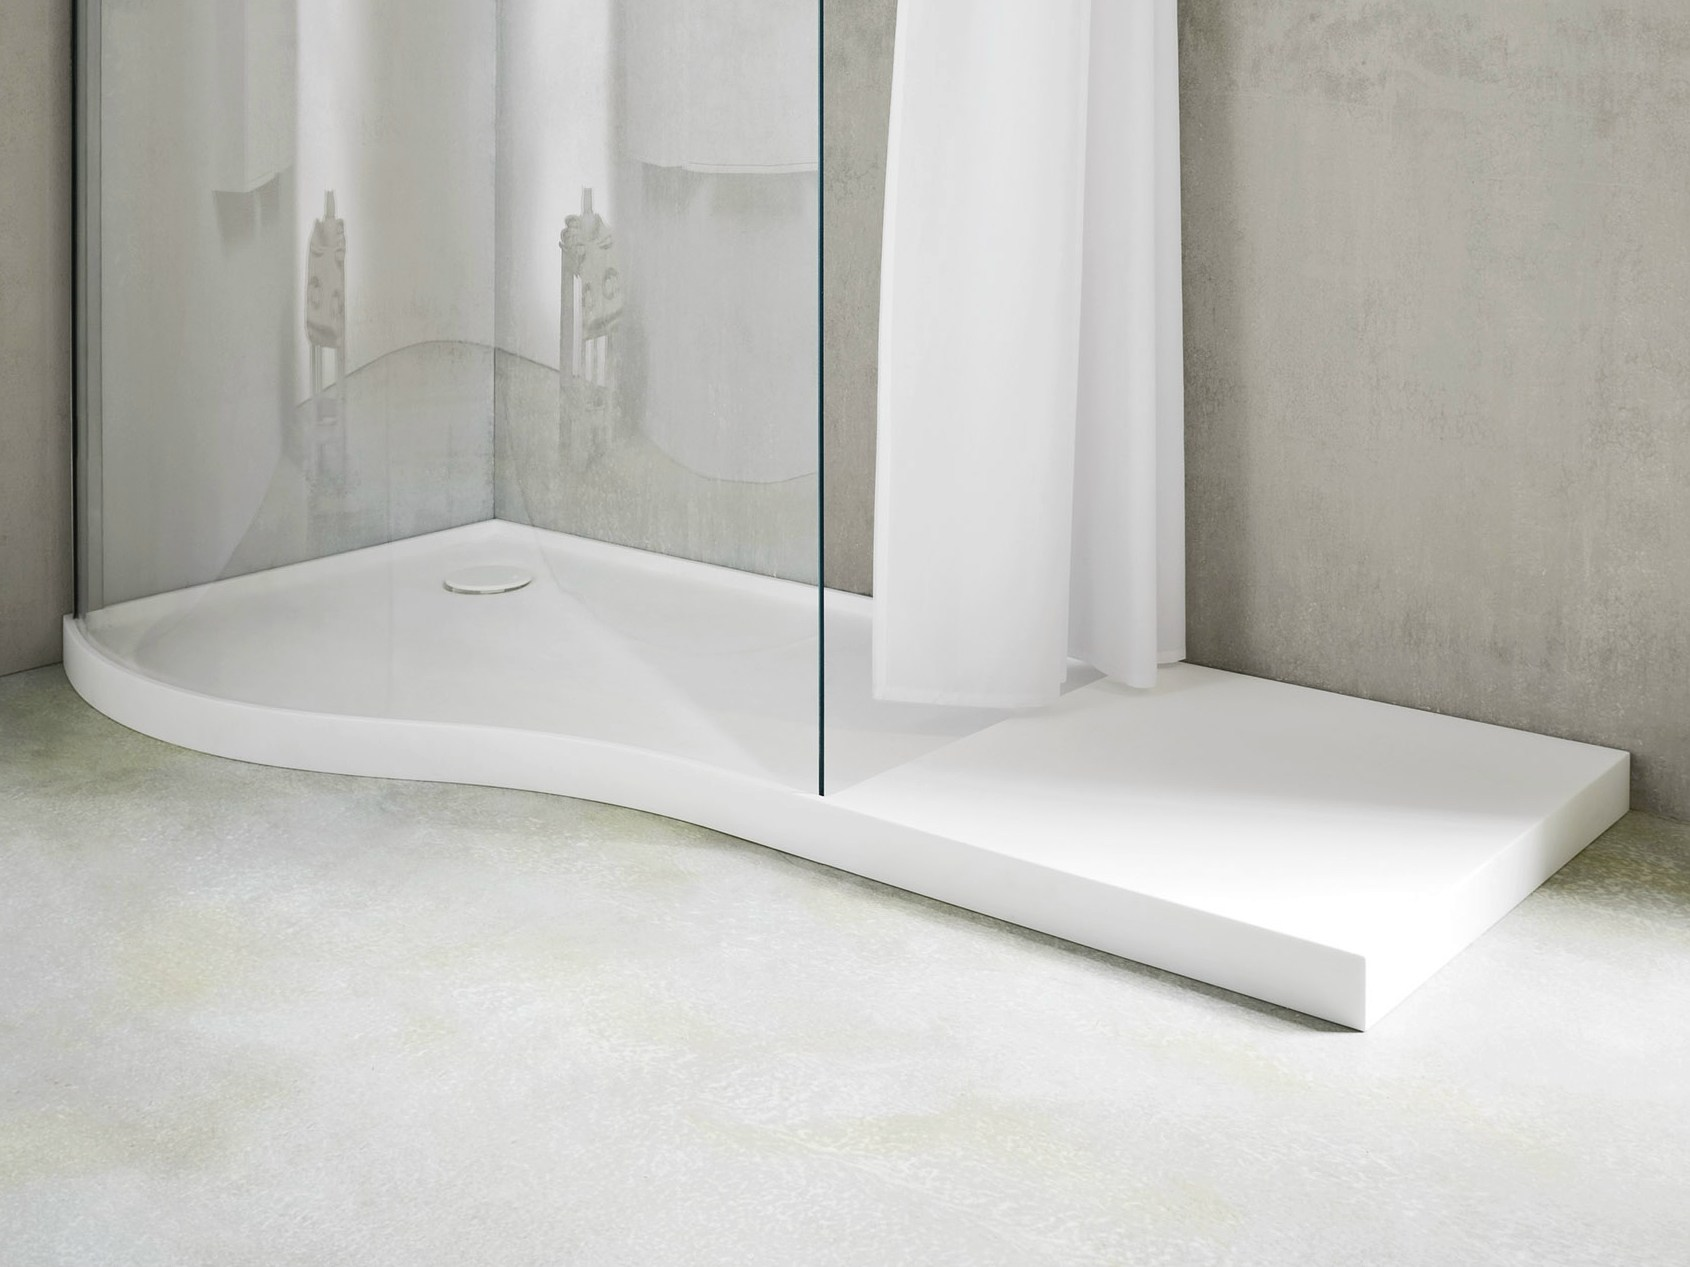 BOMA Korakril Shower Tray By Rexa Design Design Imago Design